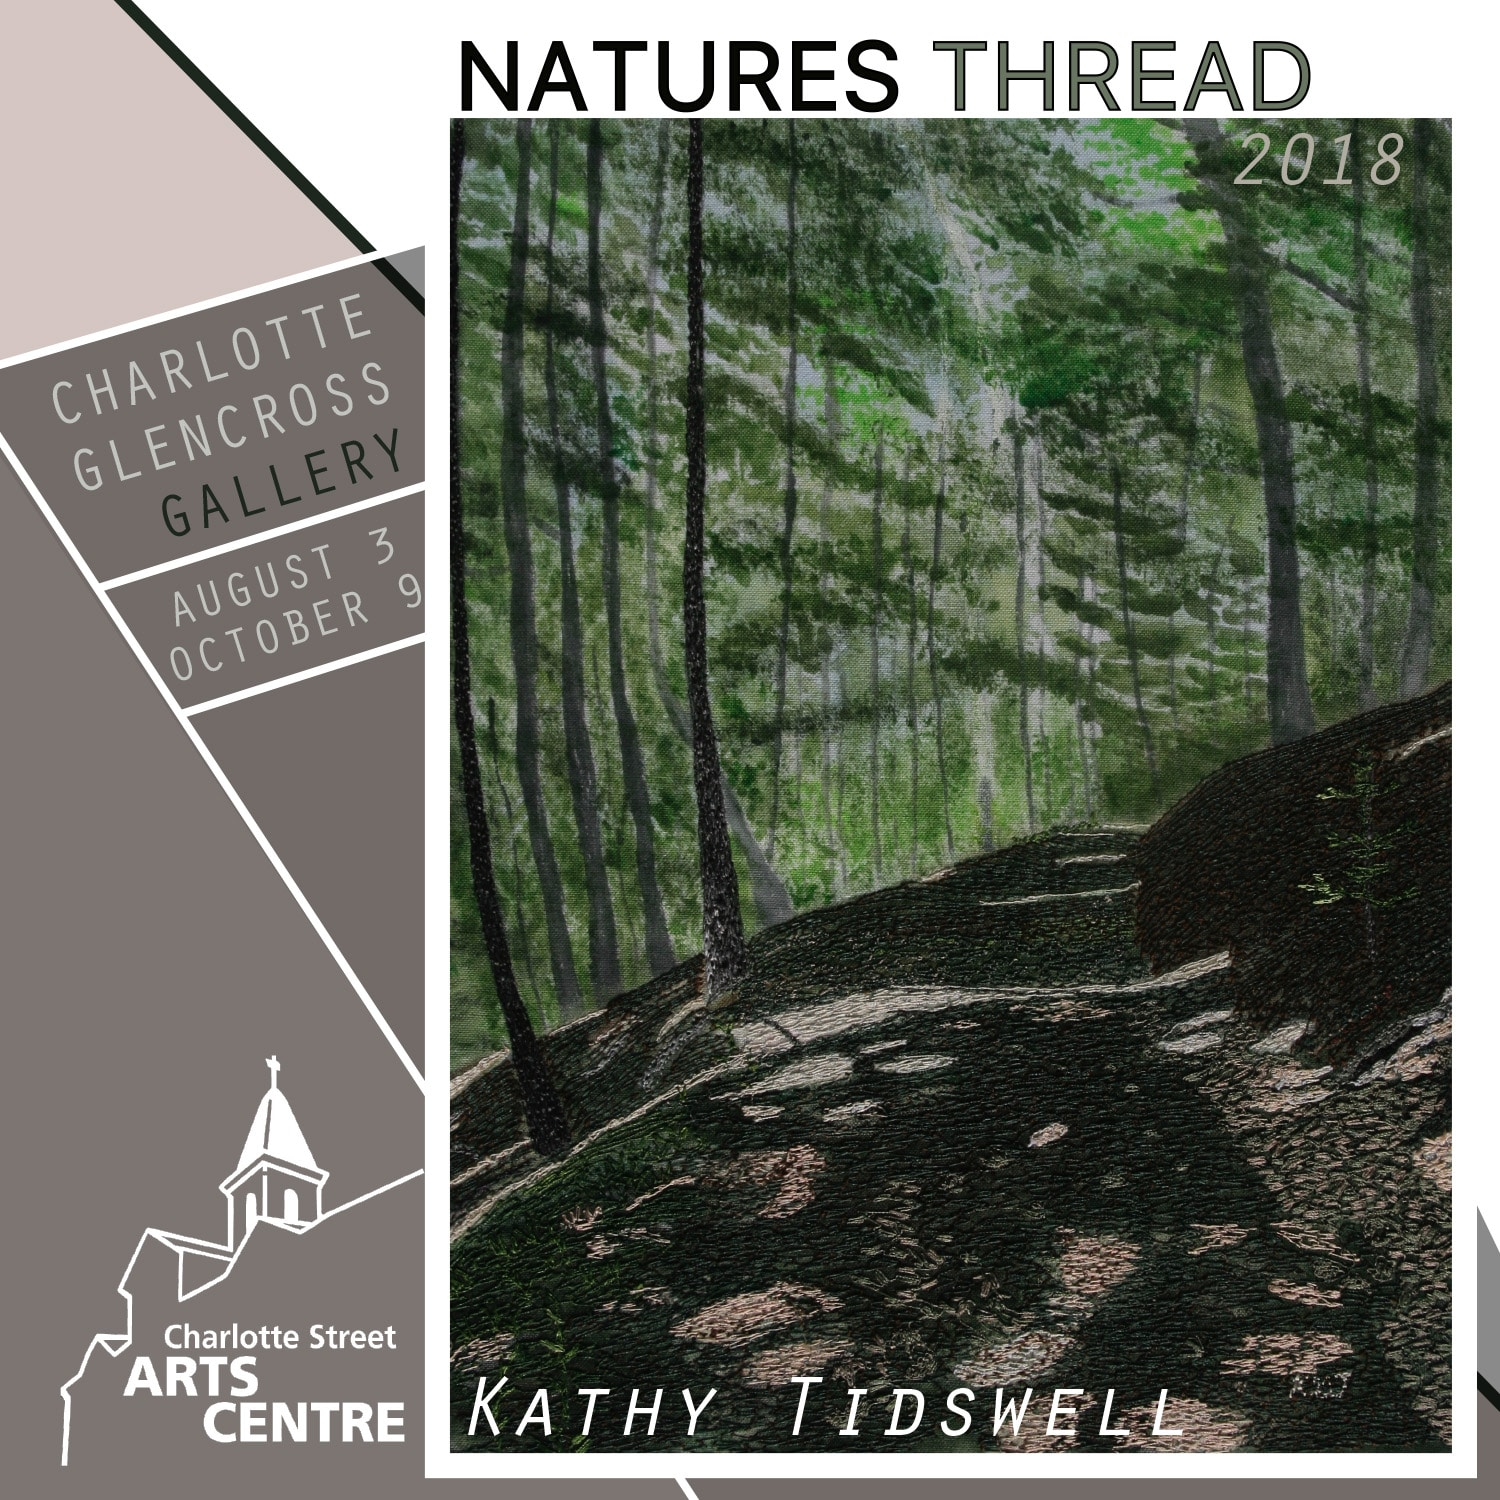 Opening of Upcoming Exhibition, Natures Thread 2018